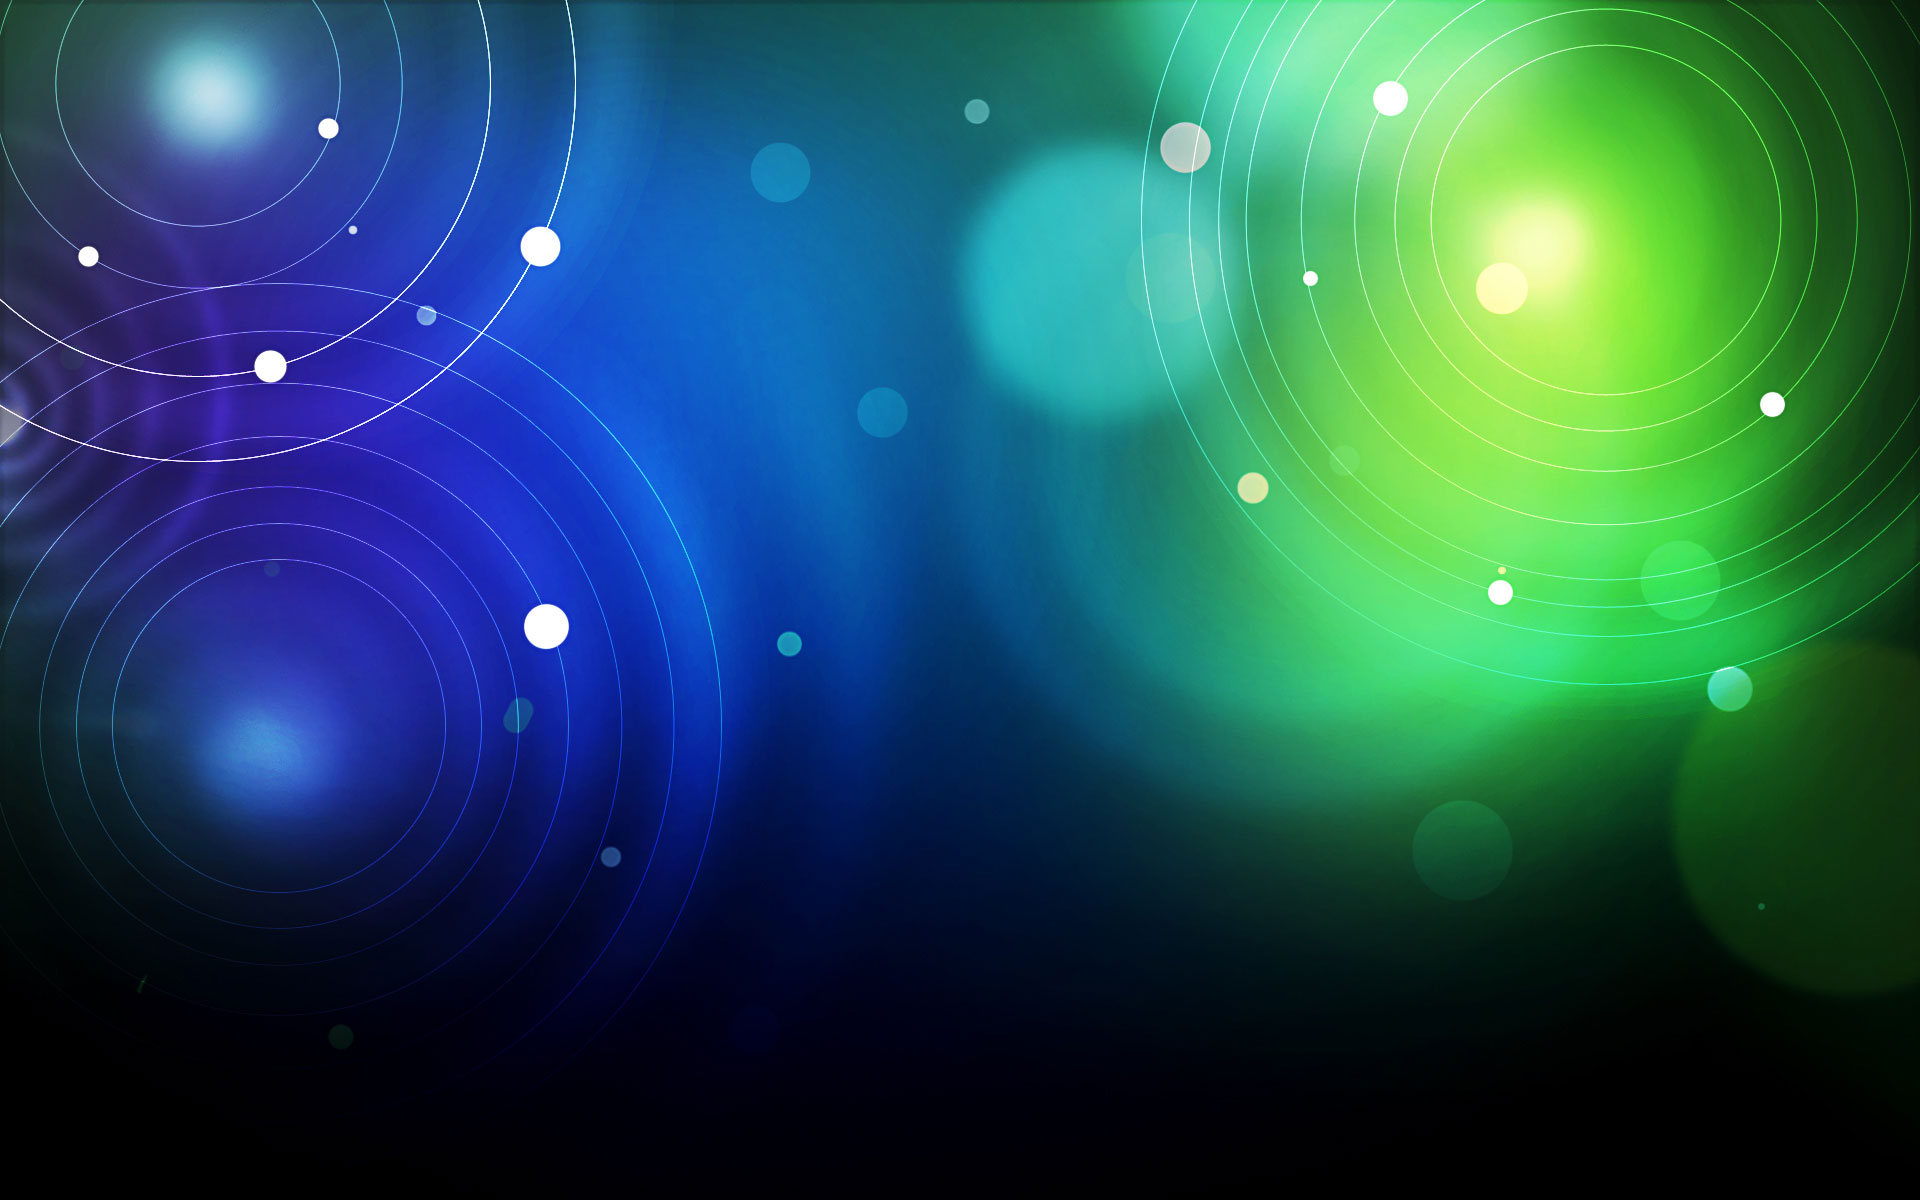 How to Create Abstract Colorful Swirl Waves Background in ...